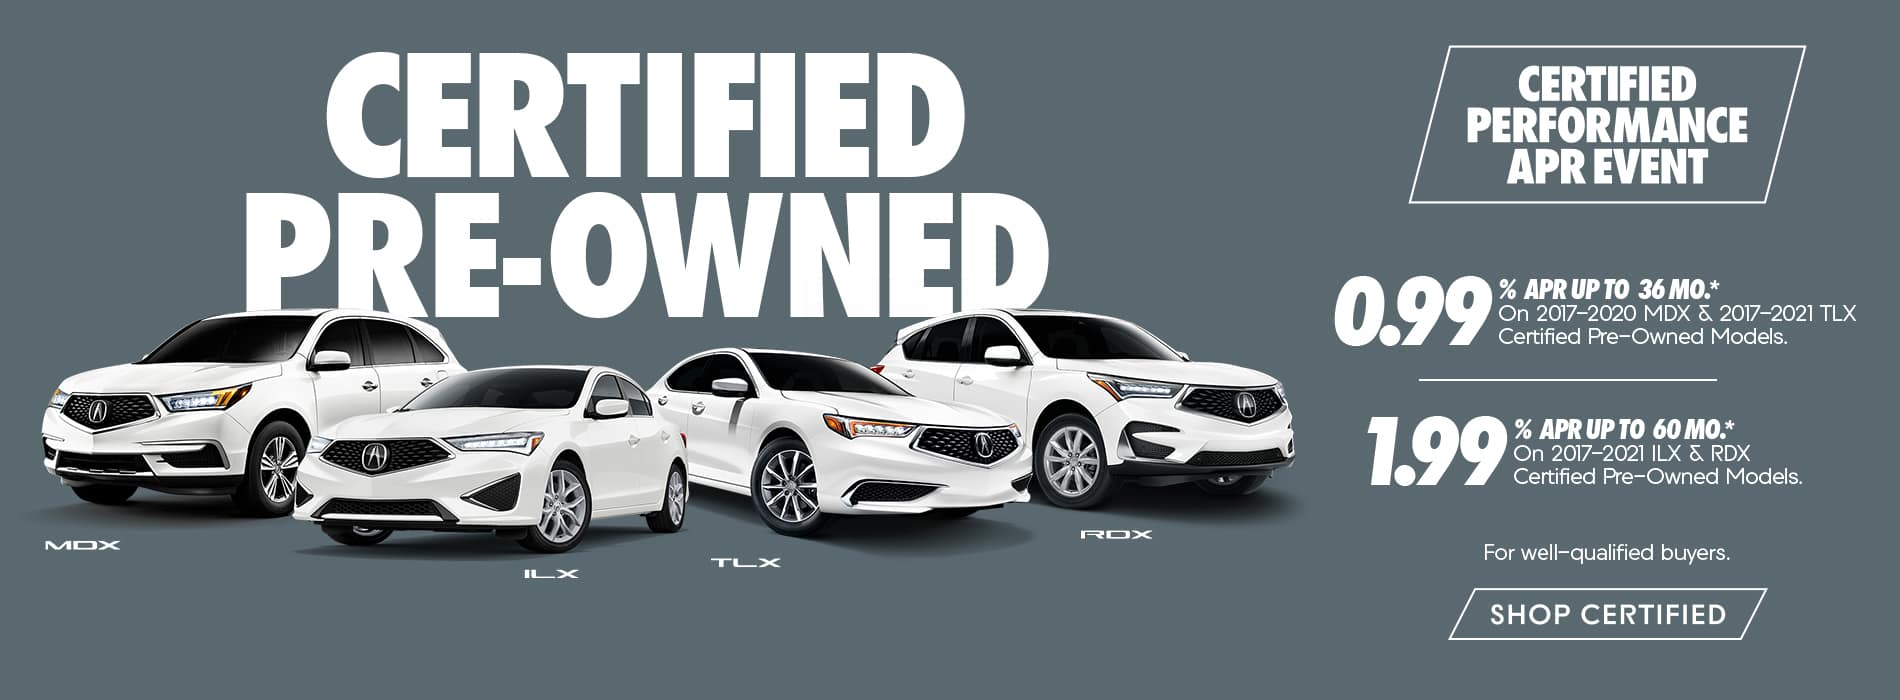 Certified Pre-Owned Acura Offers Certified Performance APR Event Duluth GA